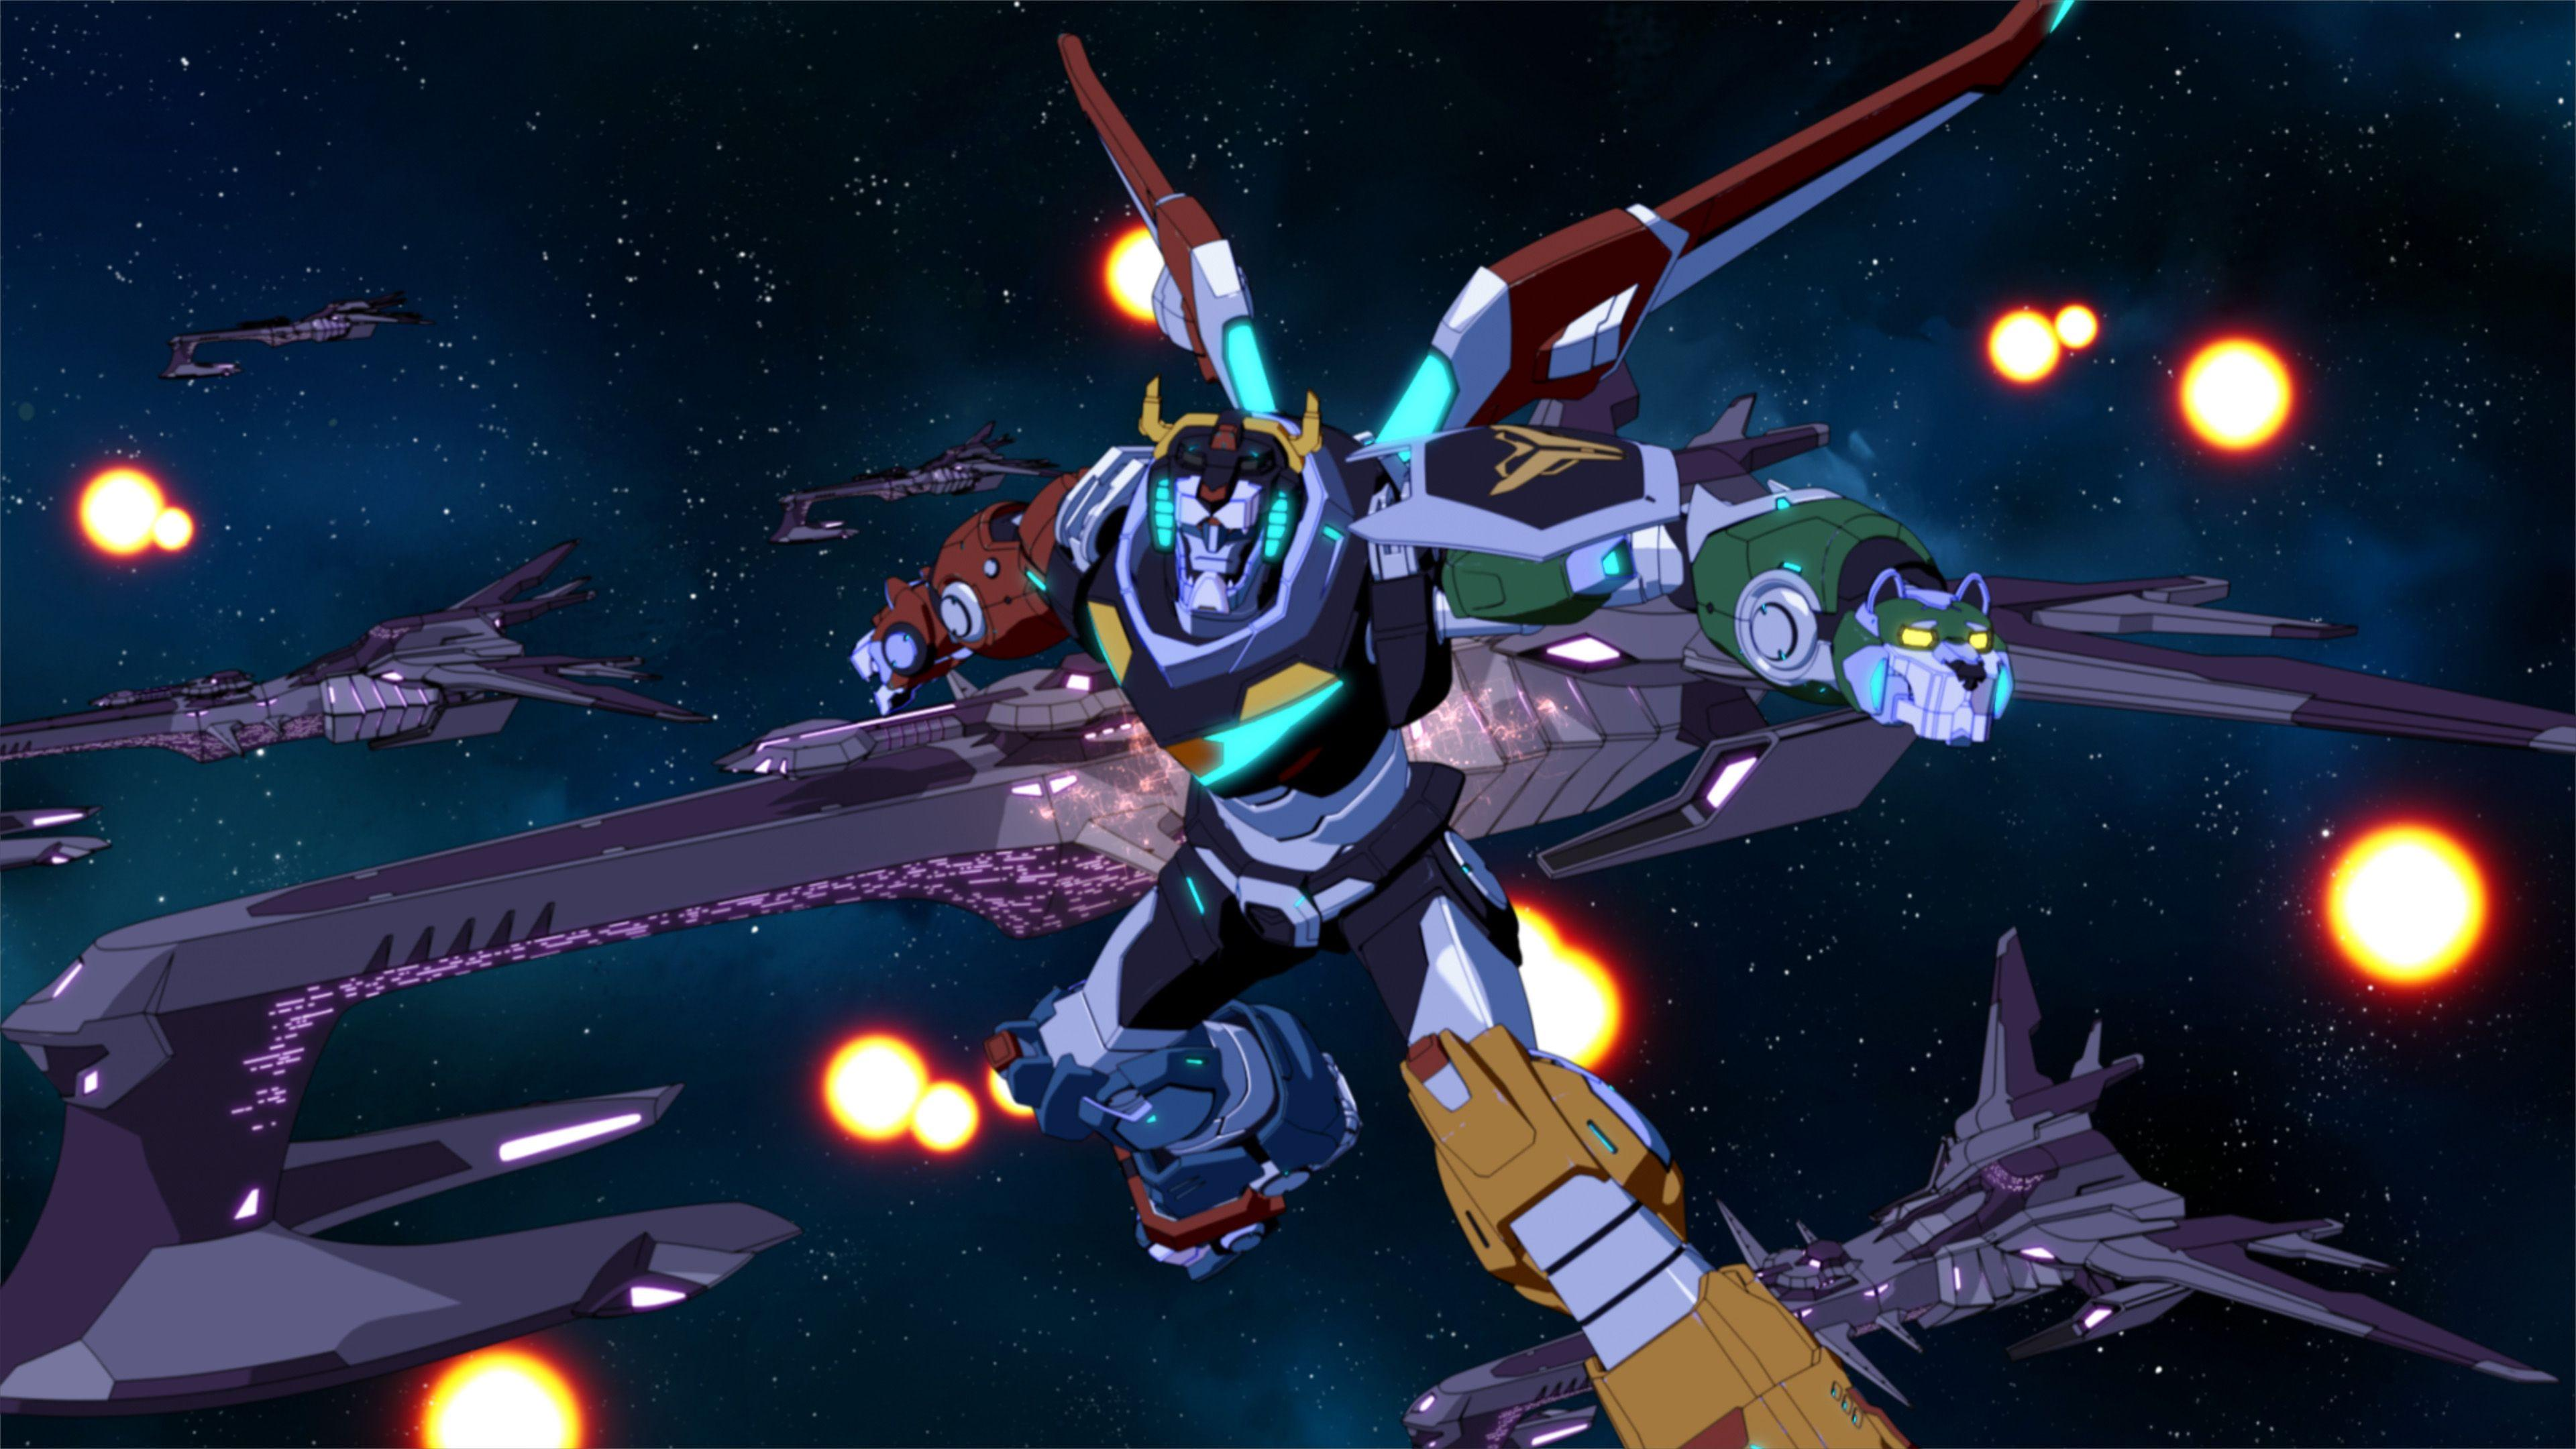 Voltron Legendary Defender Wallpapers Wallpaper Cave